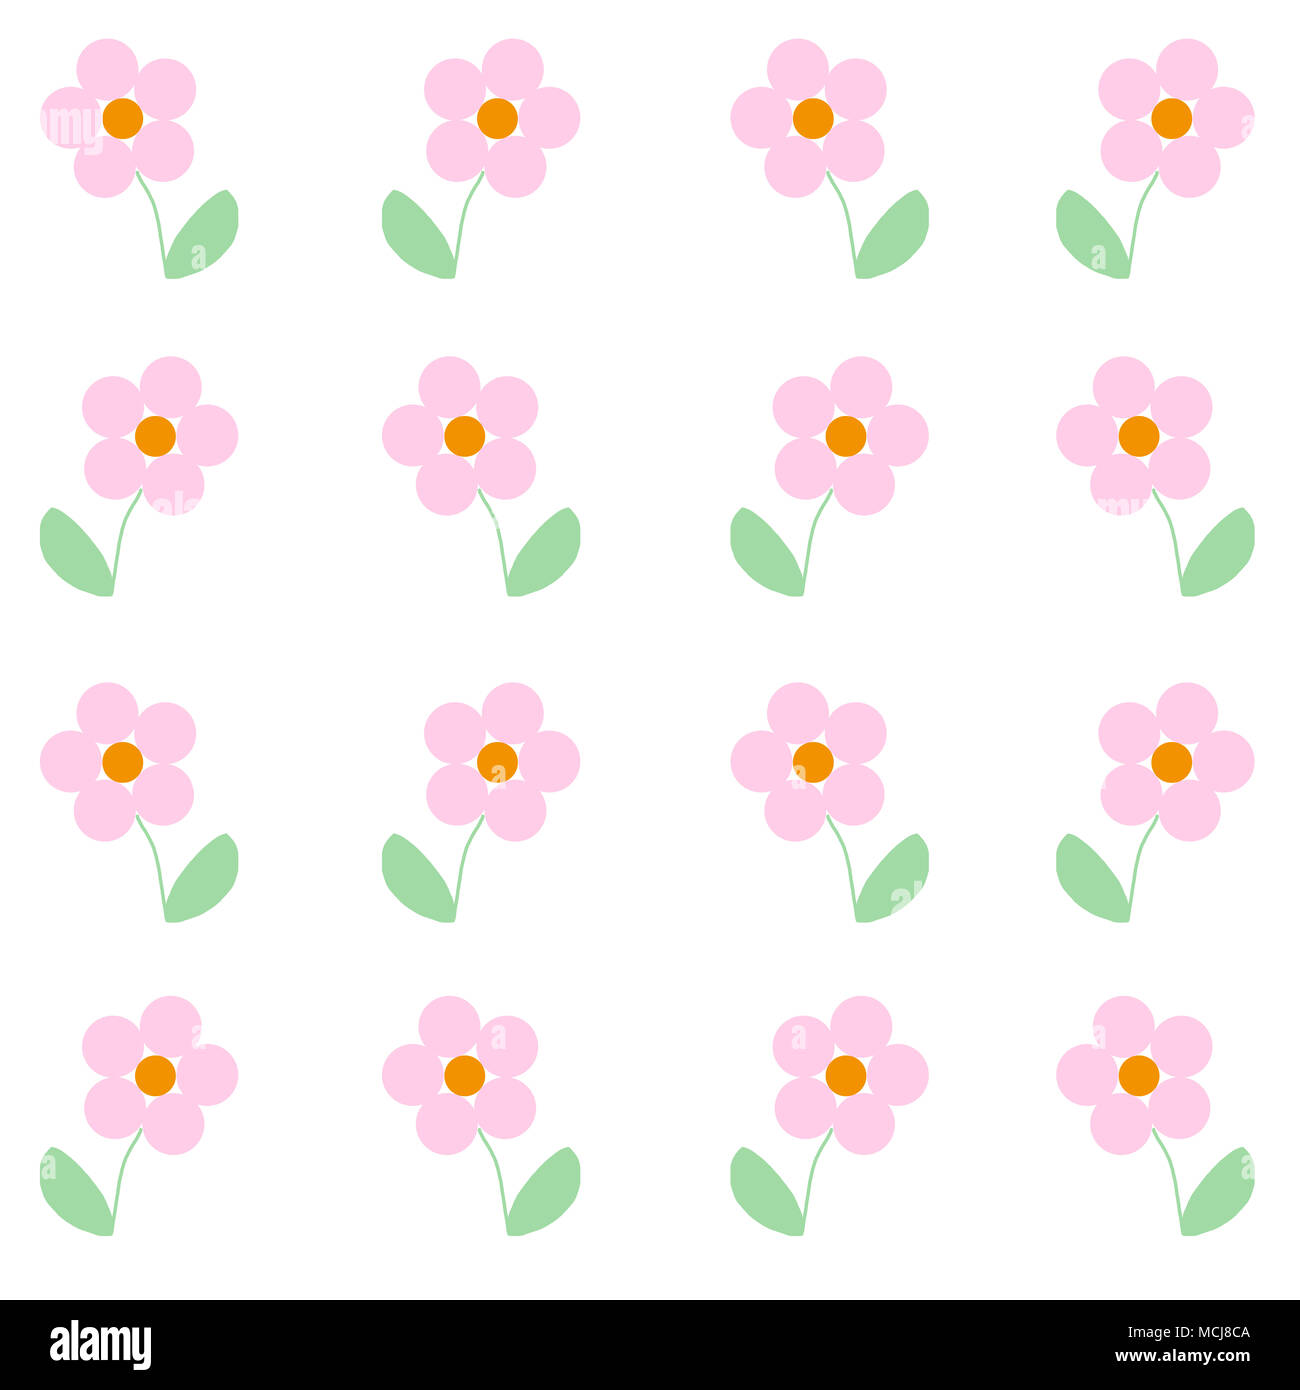 cute illustrated baby pink flowers. simple print to be used as a